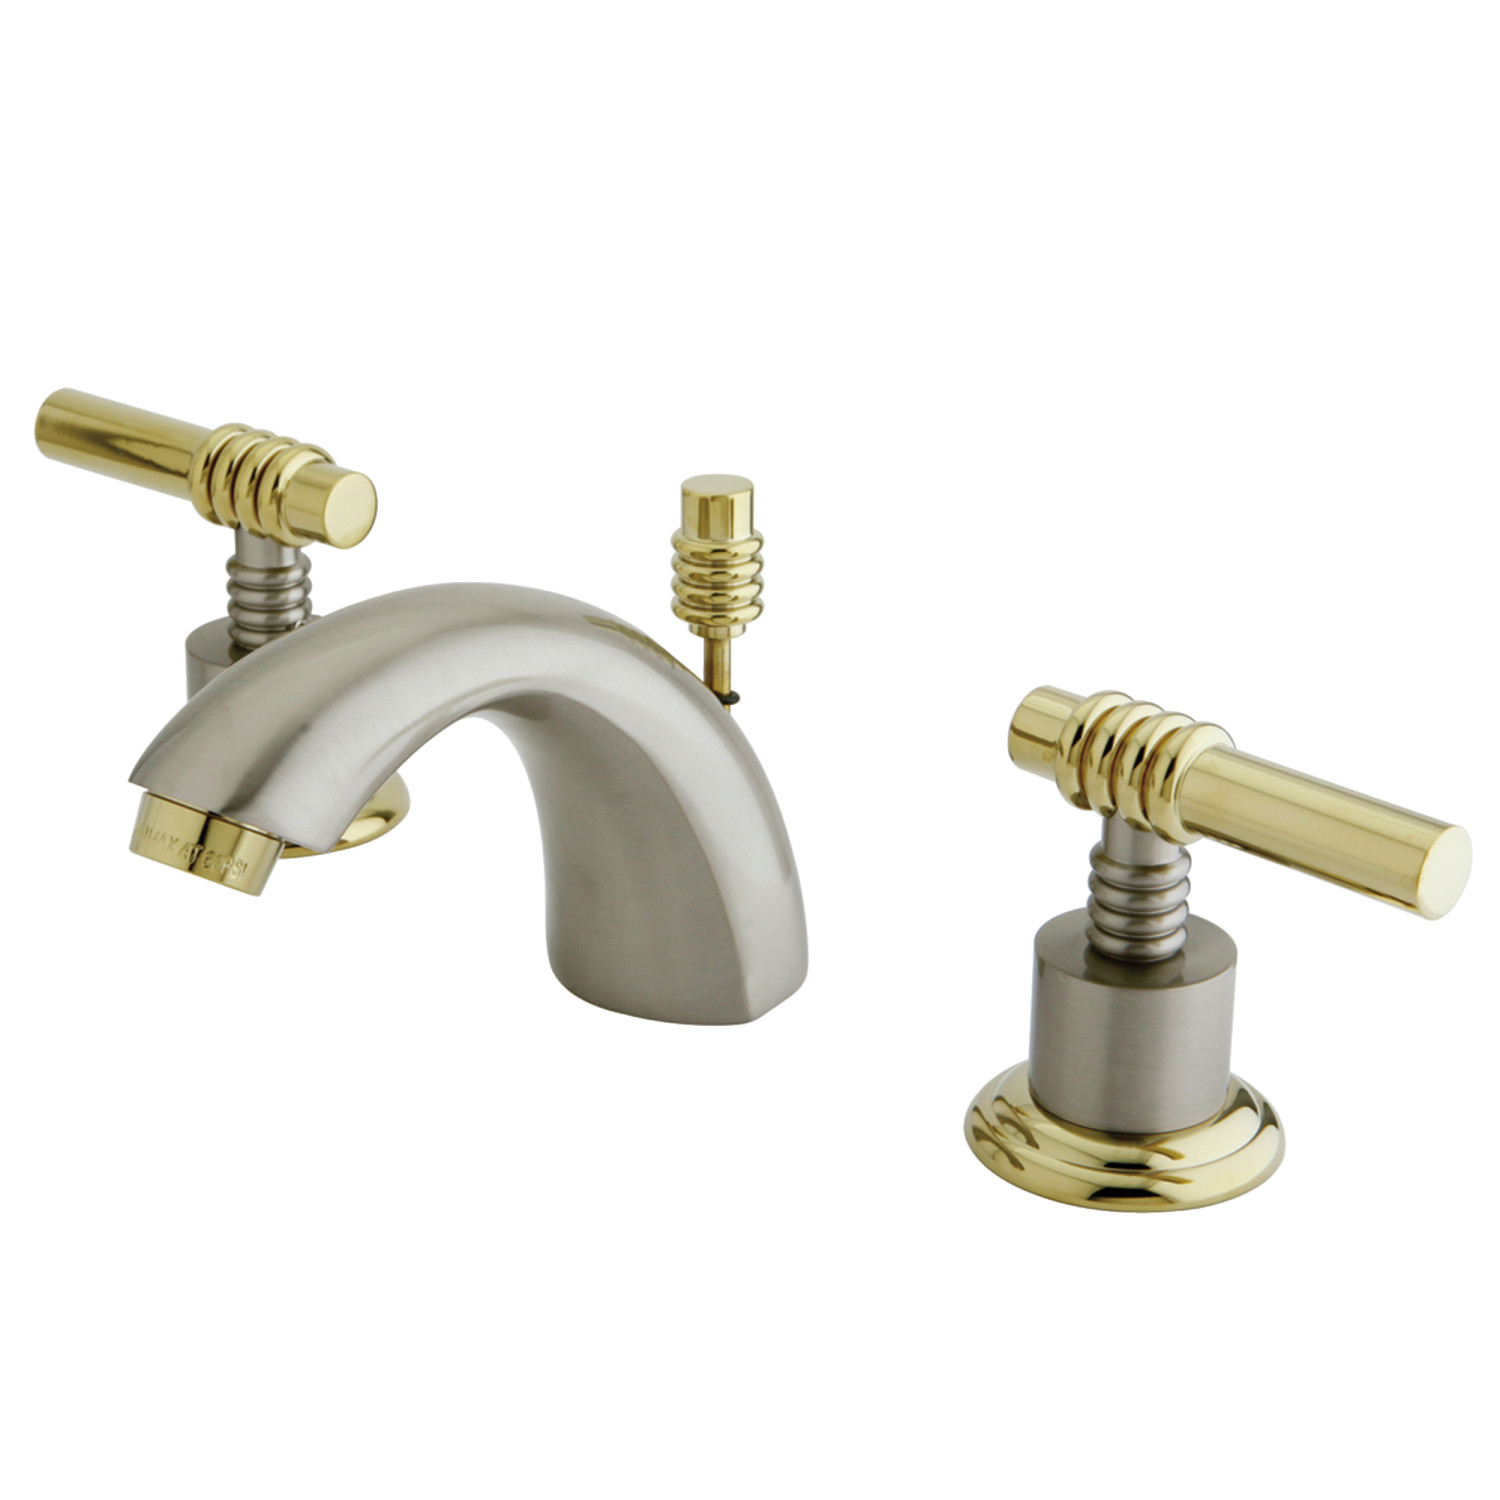 Groovy Elements Of Design Es2959Ml Mini Widespread Lavatory Faucet Brushed Nickel Polished Brass Home Interior And Landscaping Transignezvosmurscom